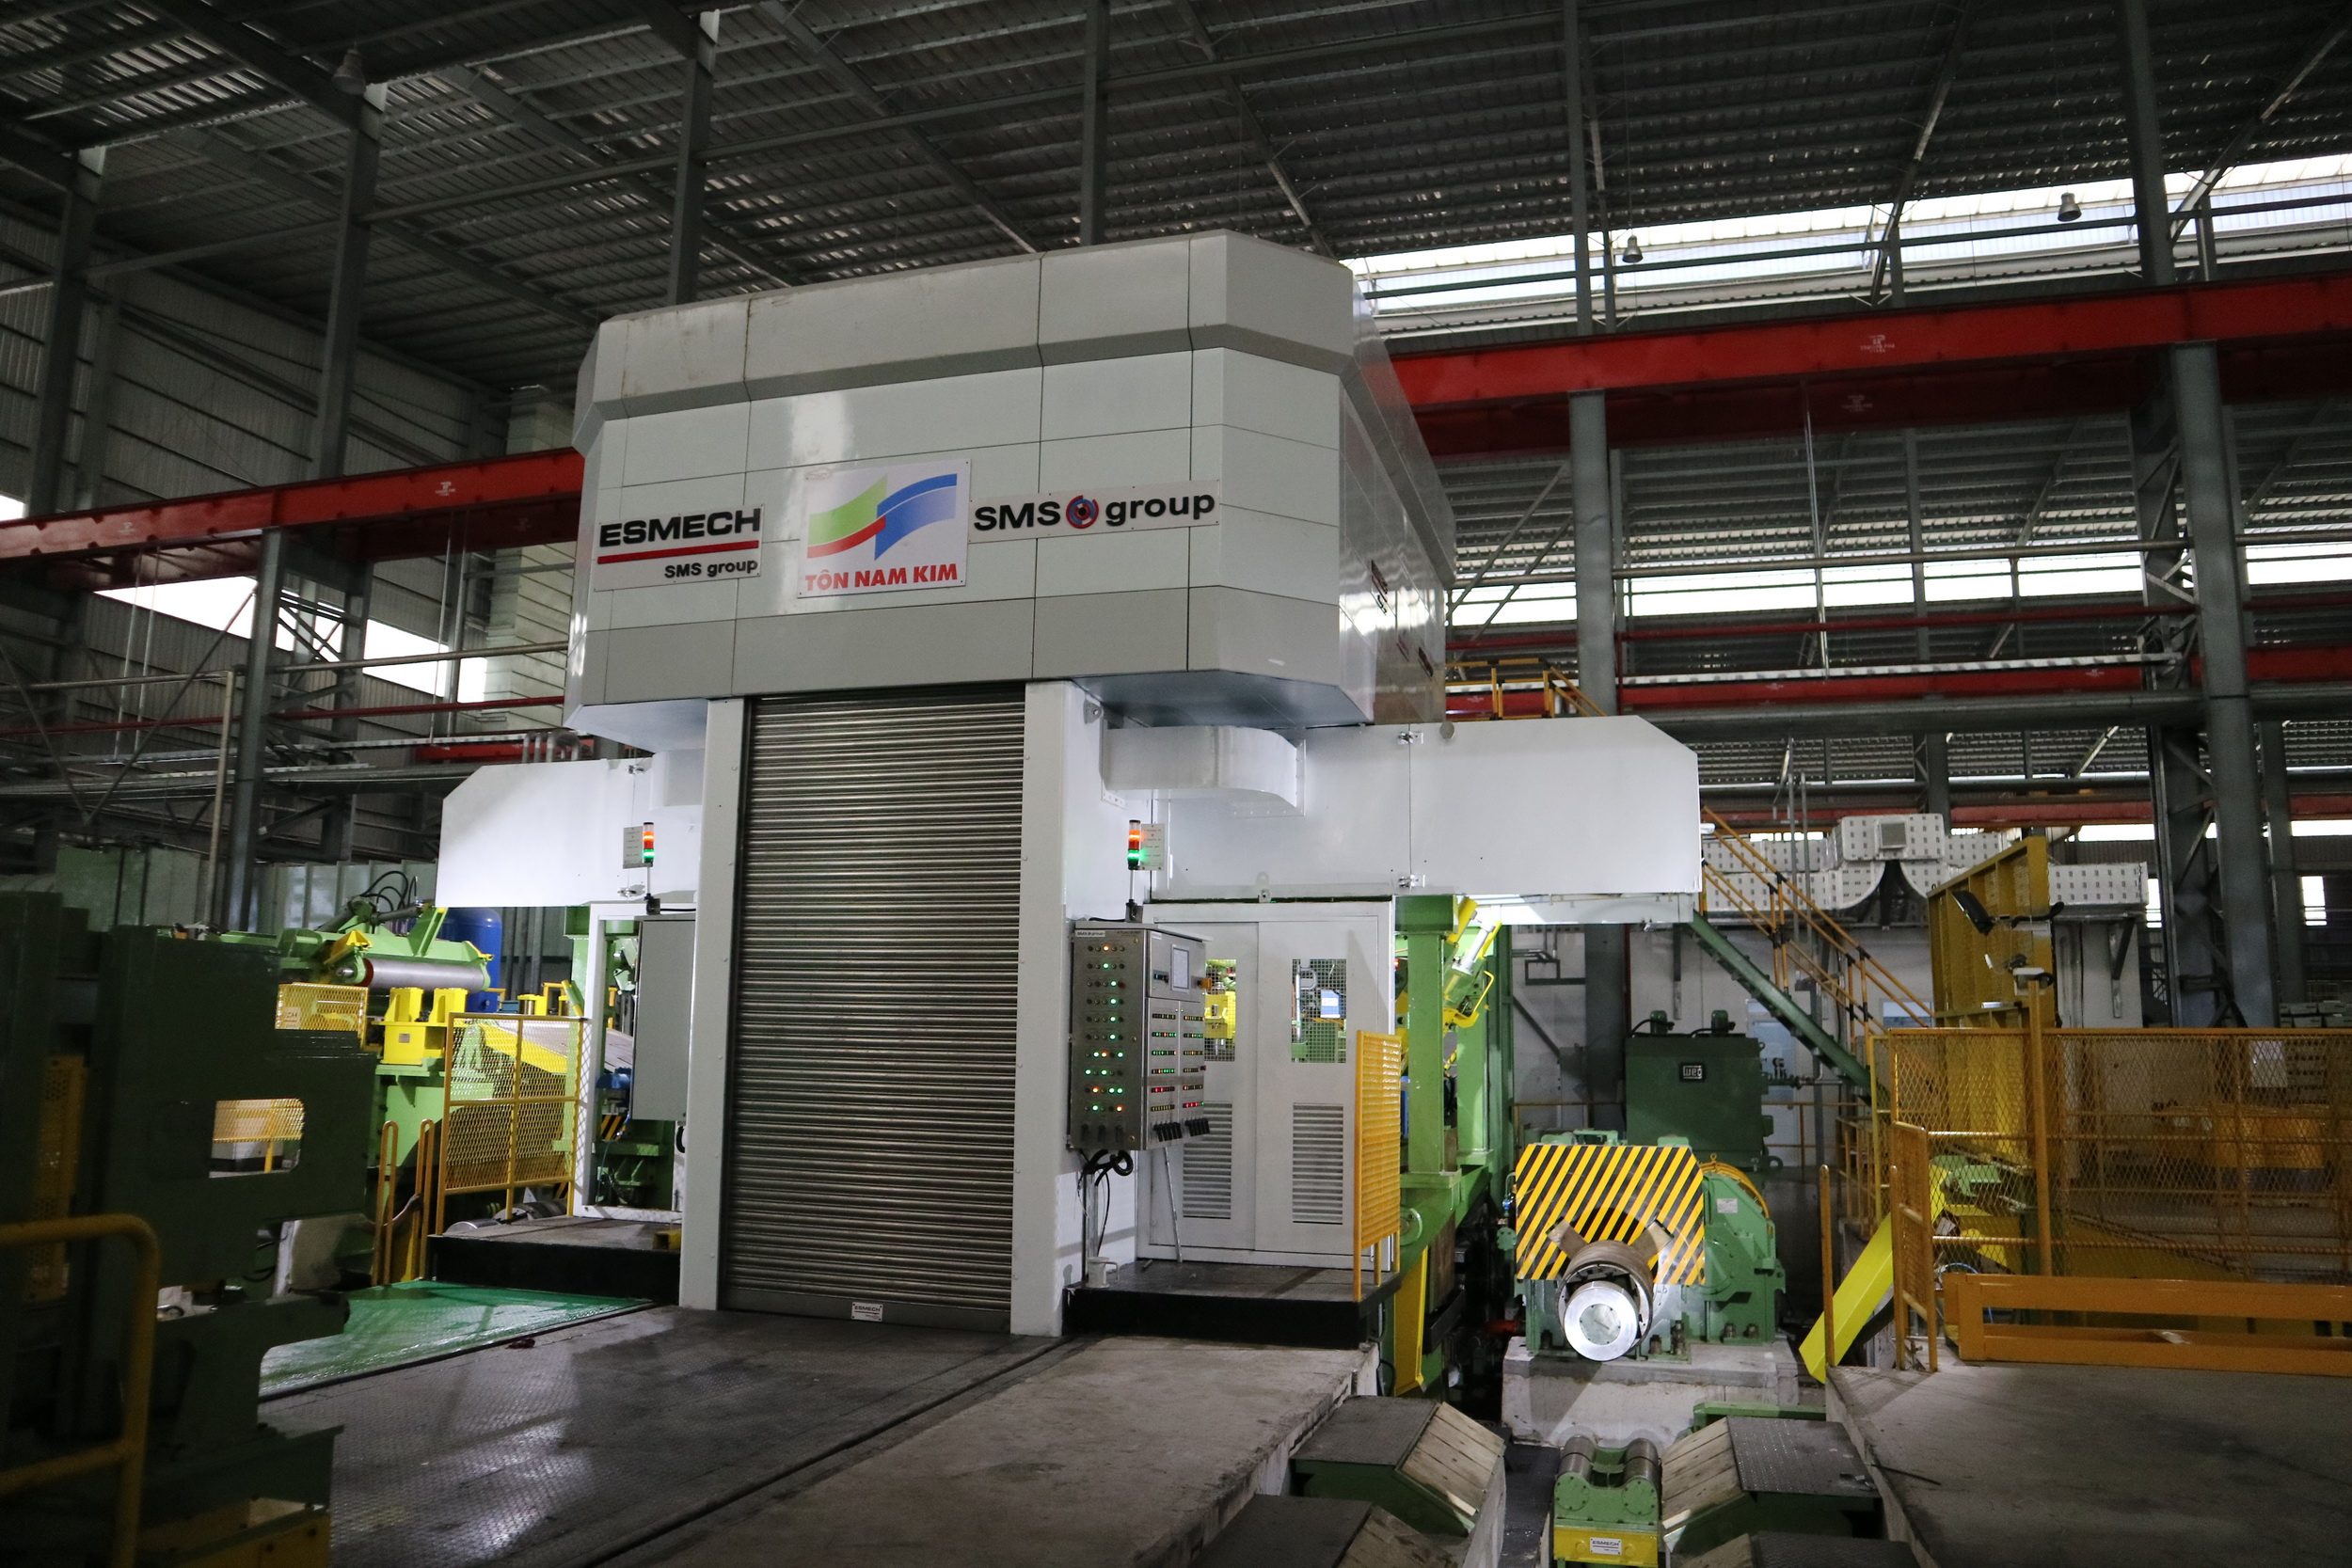 Nam Kim Steel has successfully started operation of its third cold rolling  mill supplied by SMS group, SMS group GmbH, Press release - PresseBox